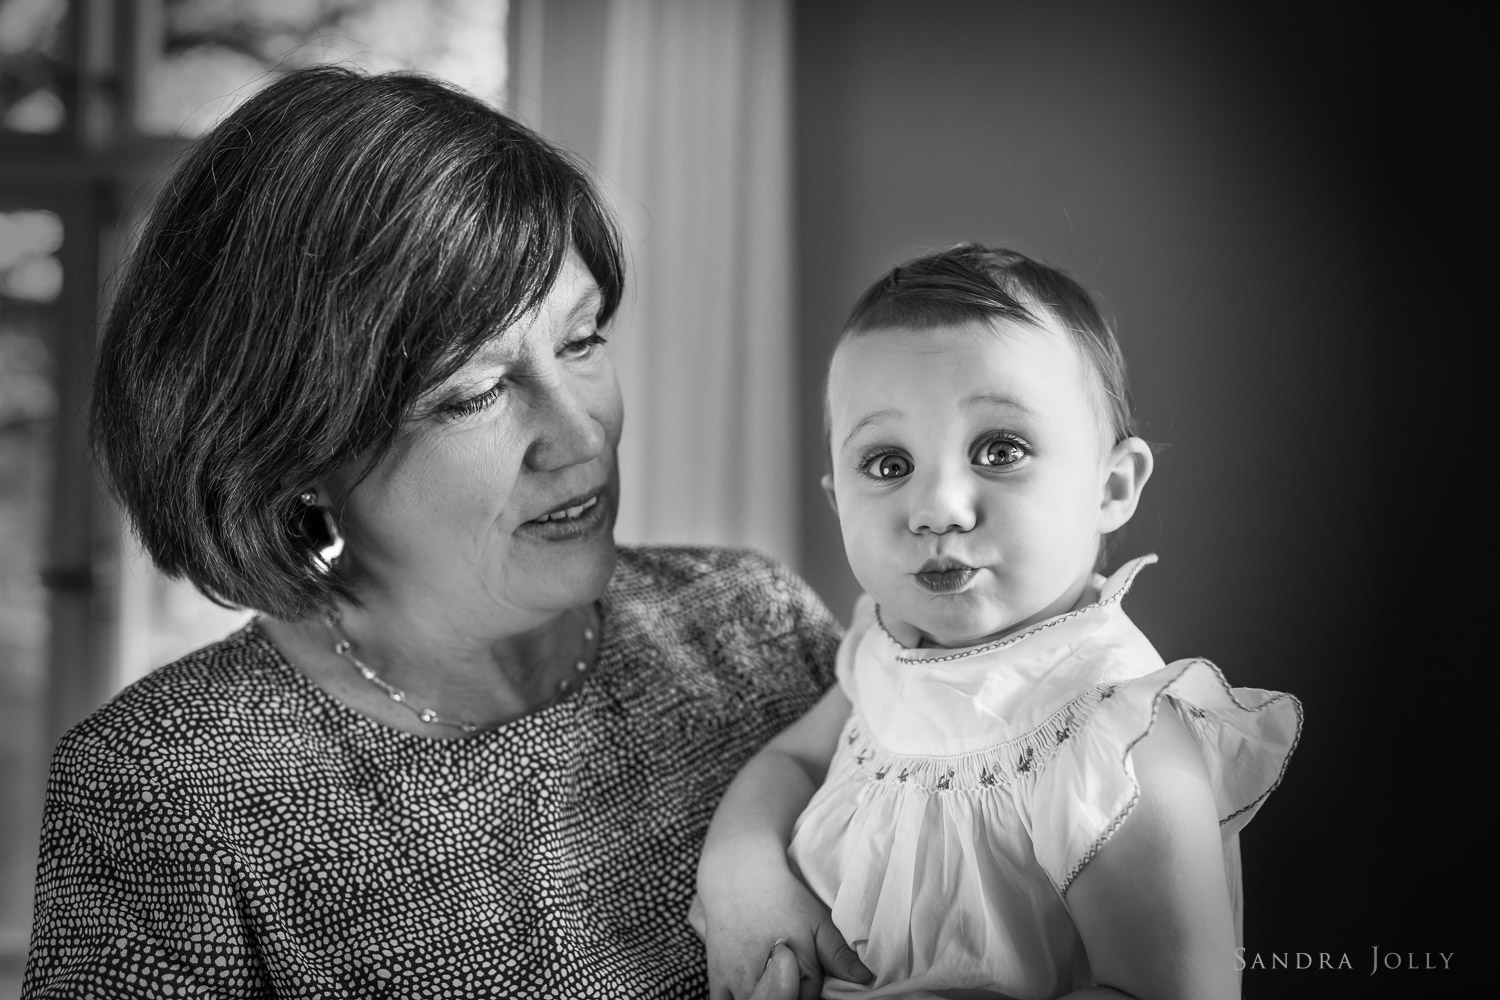 grandmother-and-grandchild-by-familjefotograf-Sandra-Jolly.jpg